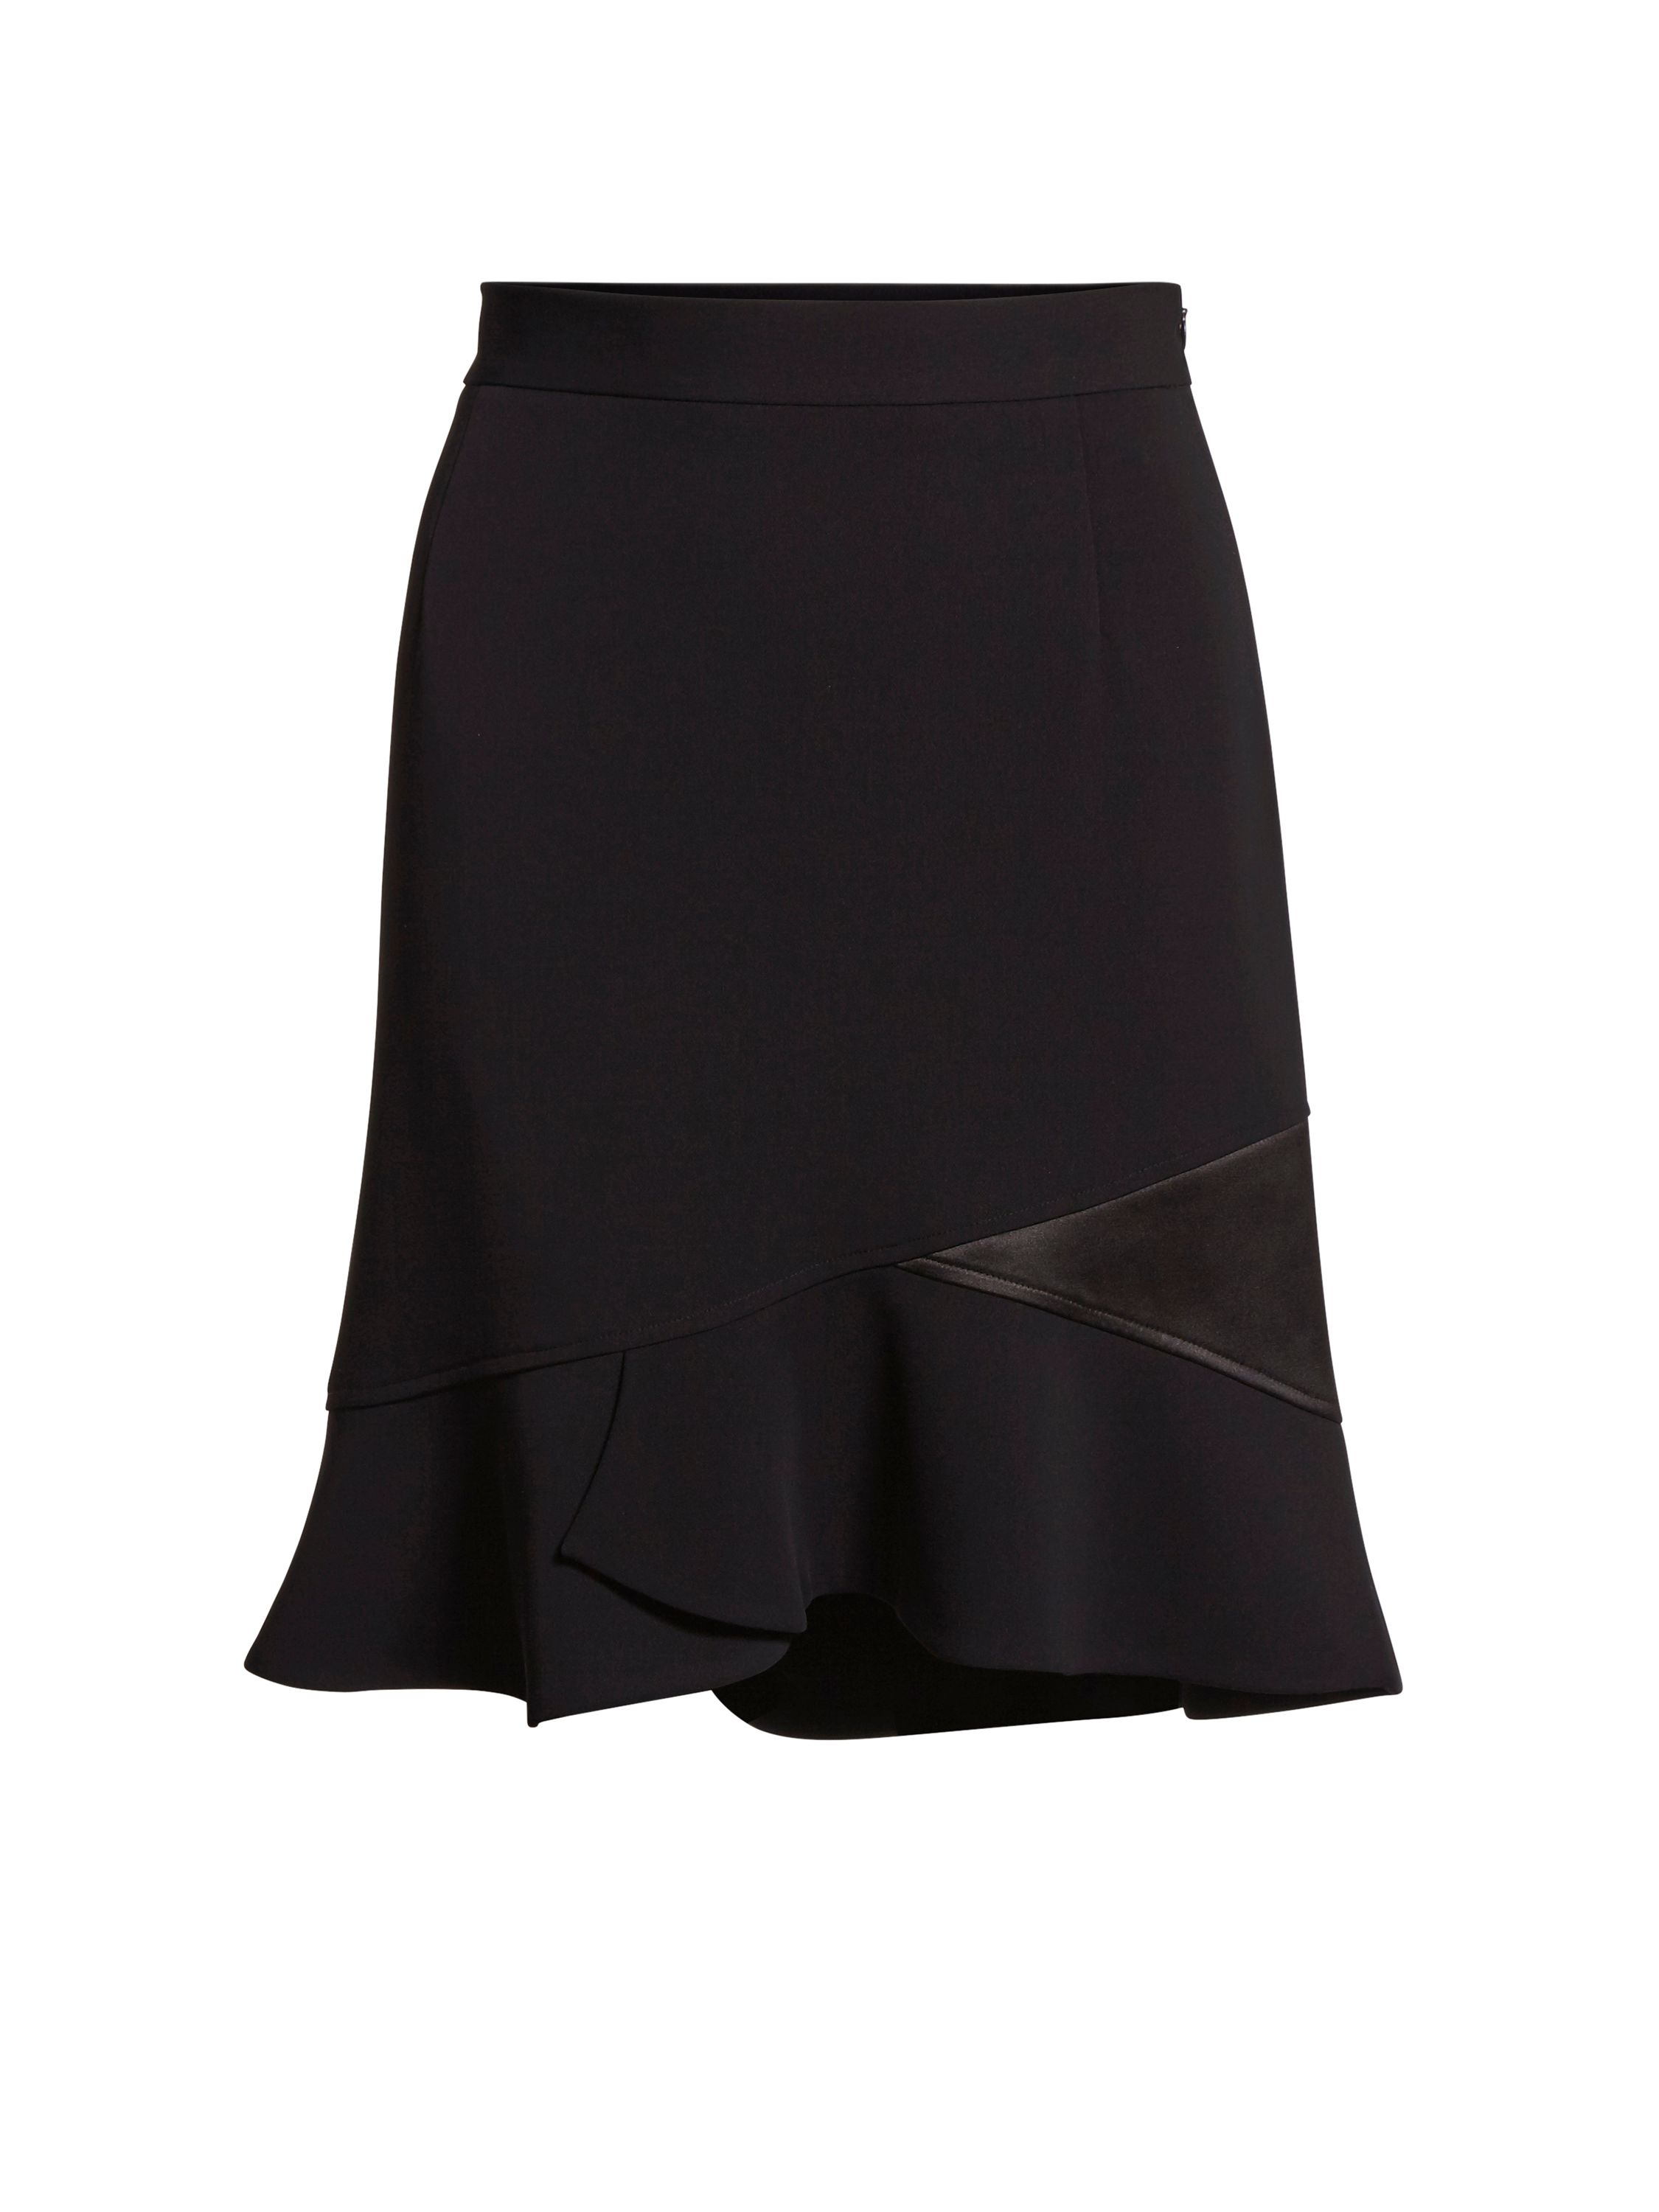 Gina Bacconi Moss Crepe Skirt With Satin Insert, Black